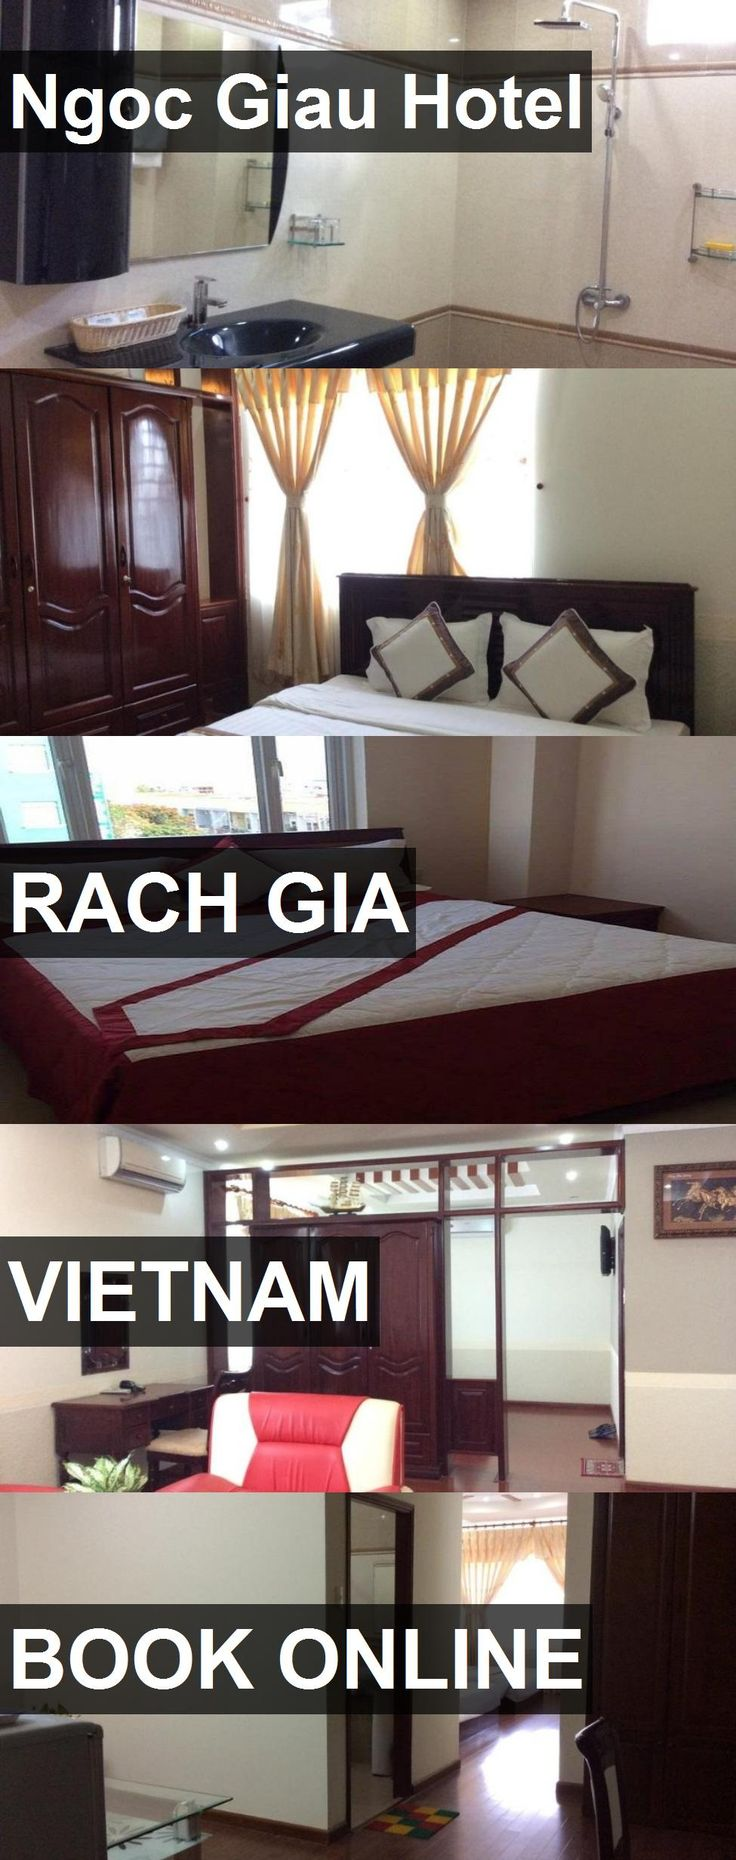 Ngoc Giau Hotel in Rach Gia, Vietnam. For more information, photos, reviews and best prices please follow the link. #Vietnam #RachGia #travel #vacation #hotel